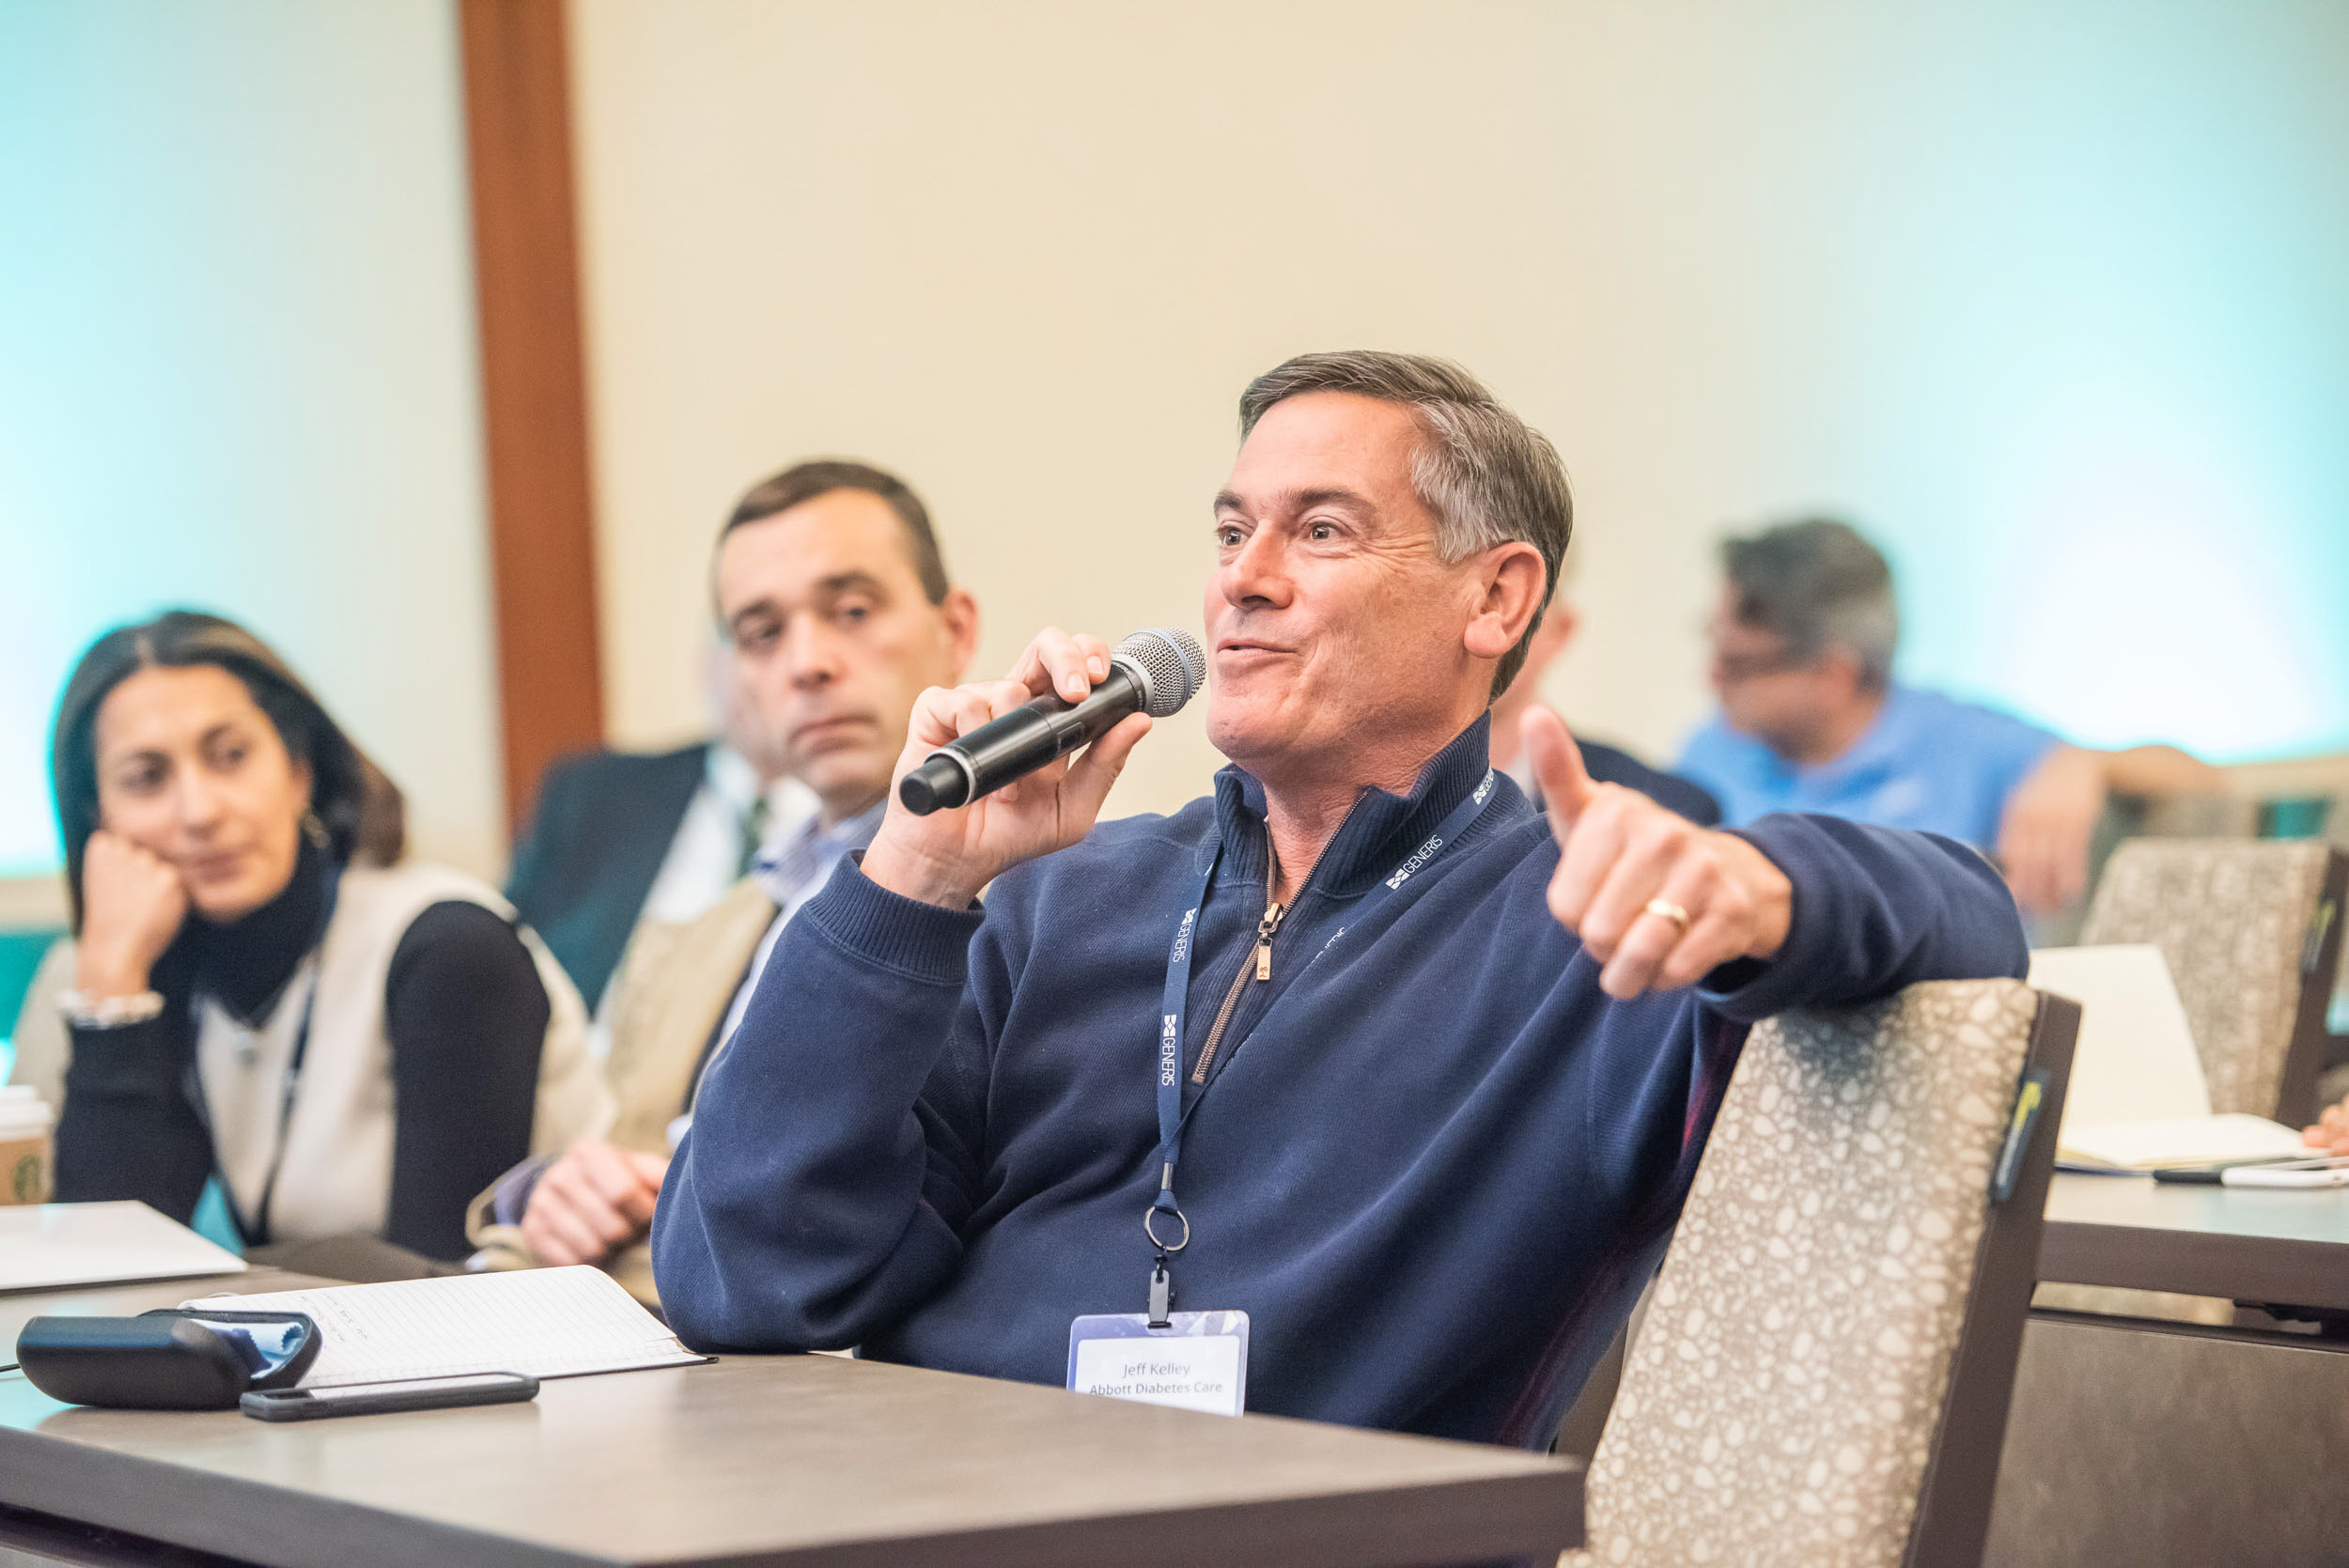 181024 - American Medical Device Summit - mark campbell photography-153_Resized_Resized.jpg